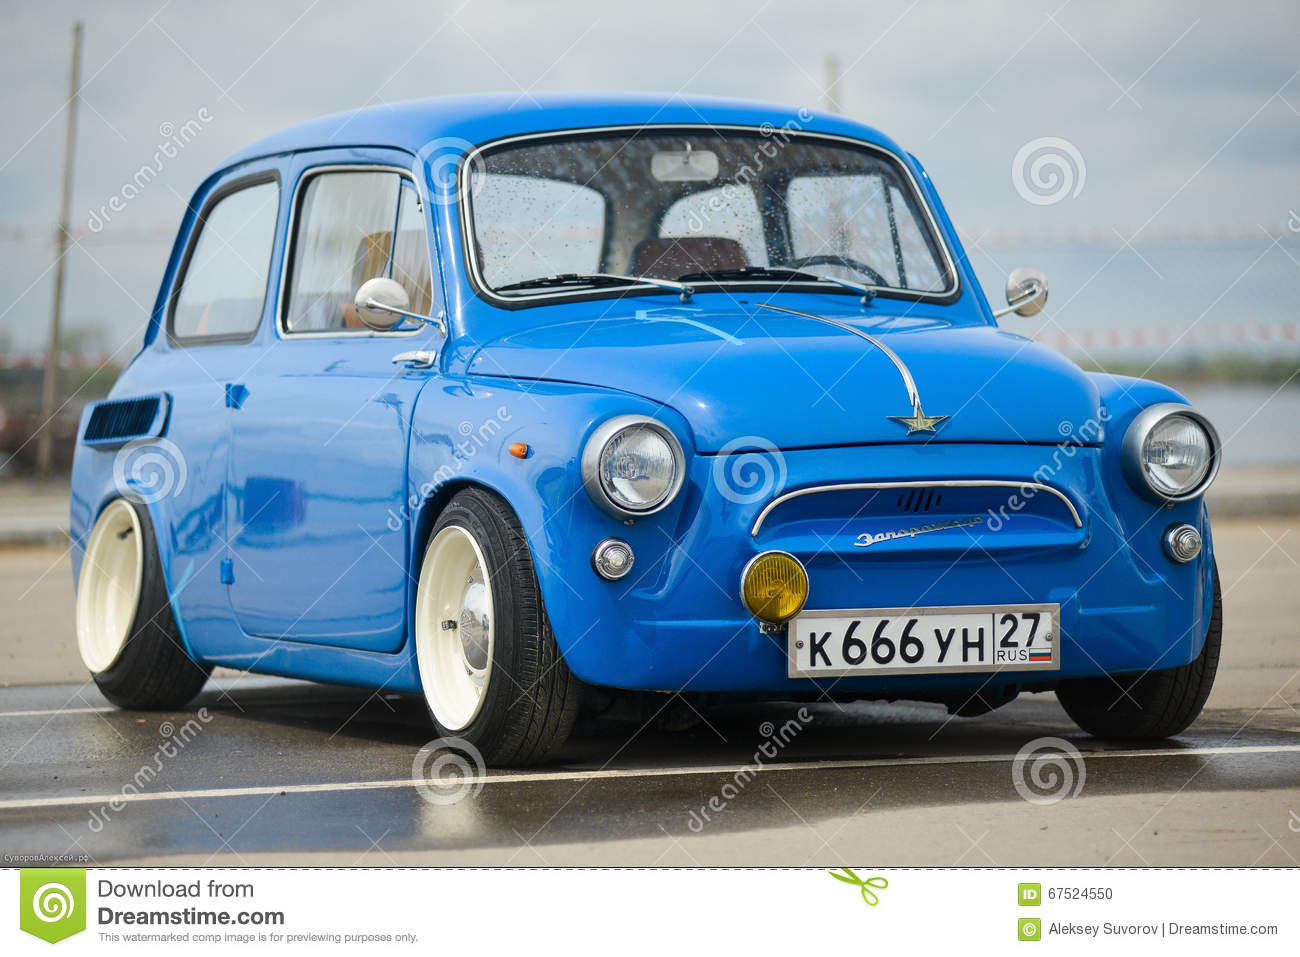 Russia, Kyabarovsk - May 17, 2015 : Vintage restored and tuned blue ZAZ-965  Zaporozhets car . released circa 1960 in USSR